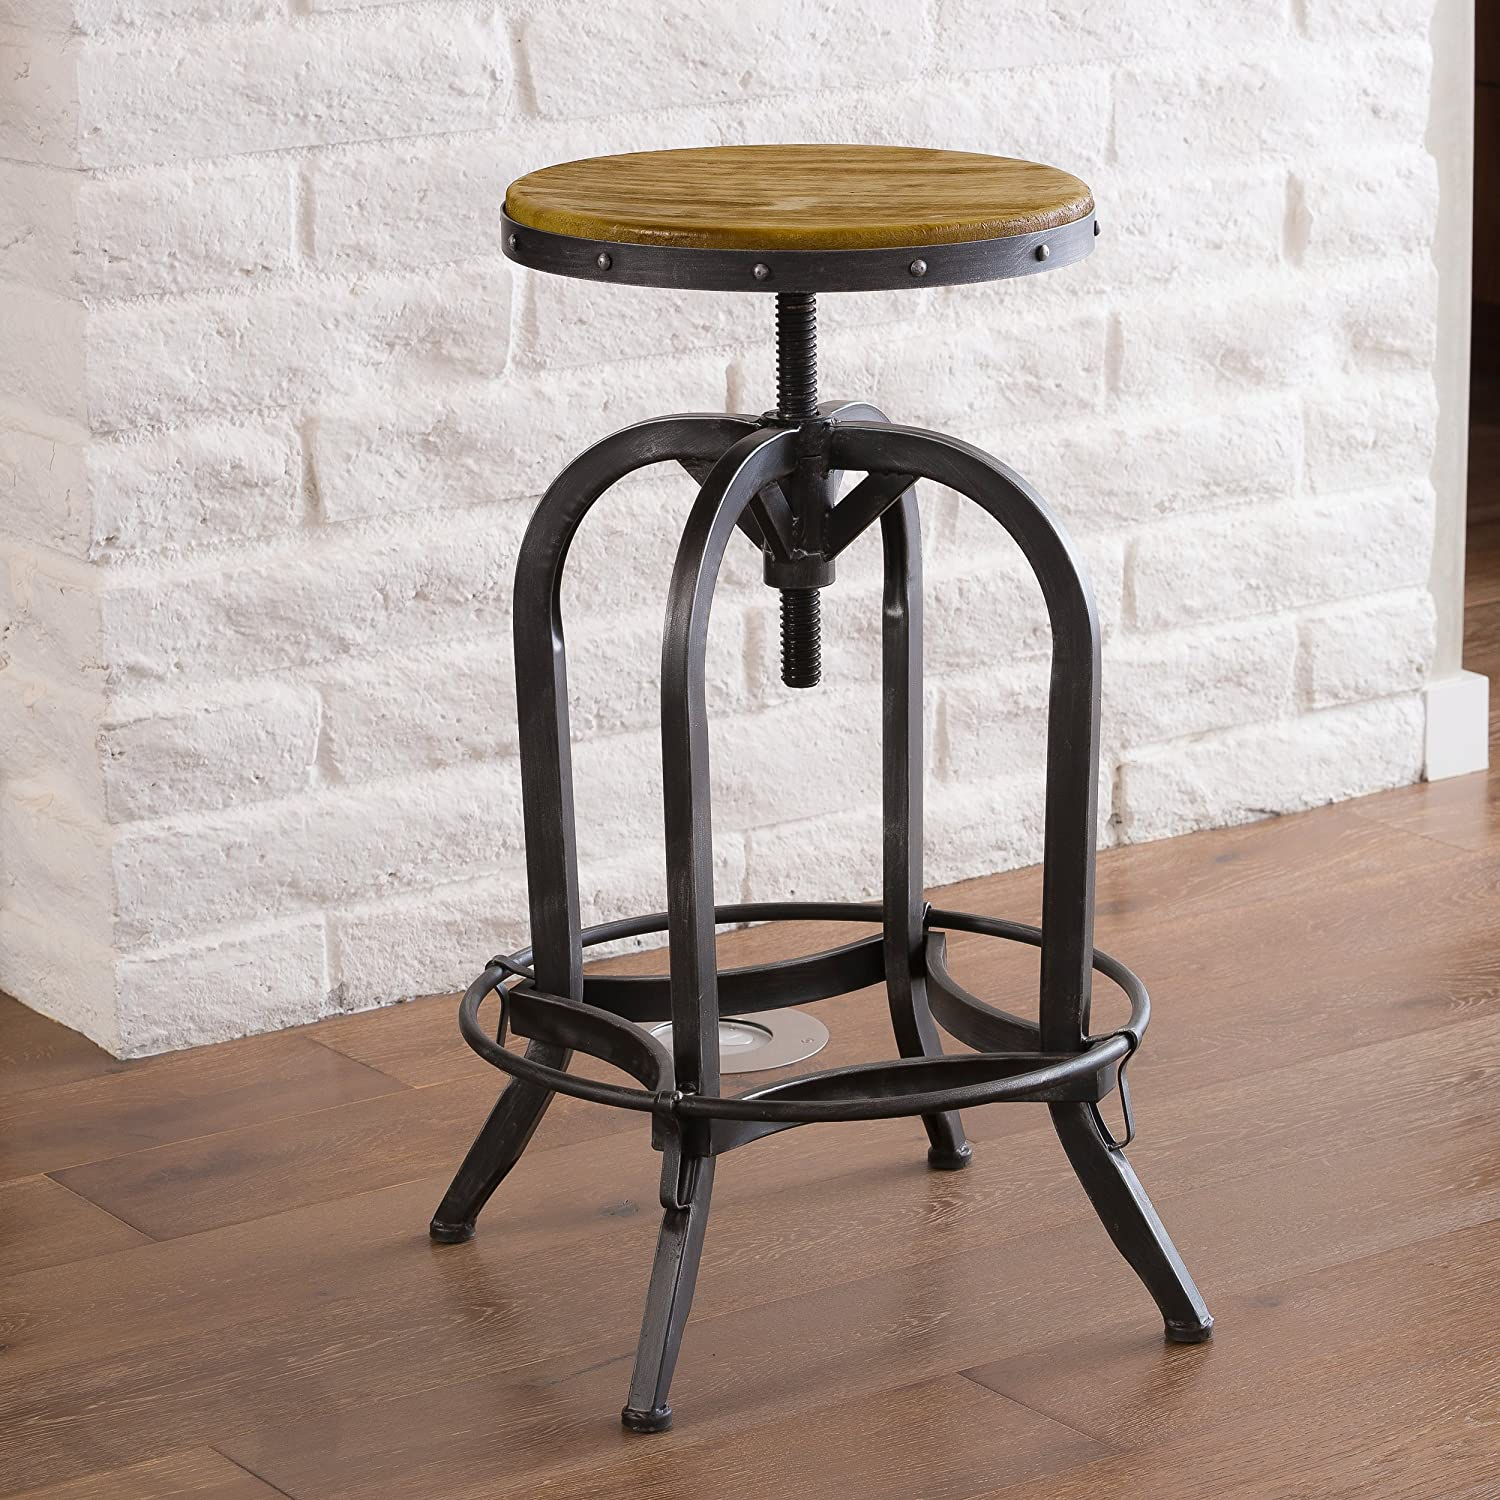 Christopher Knight Home 234615 Christopher Knight Adjustable Natural Fir Wood Finish Barstool